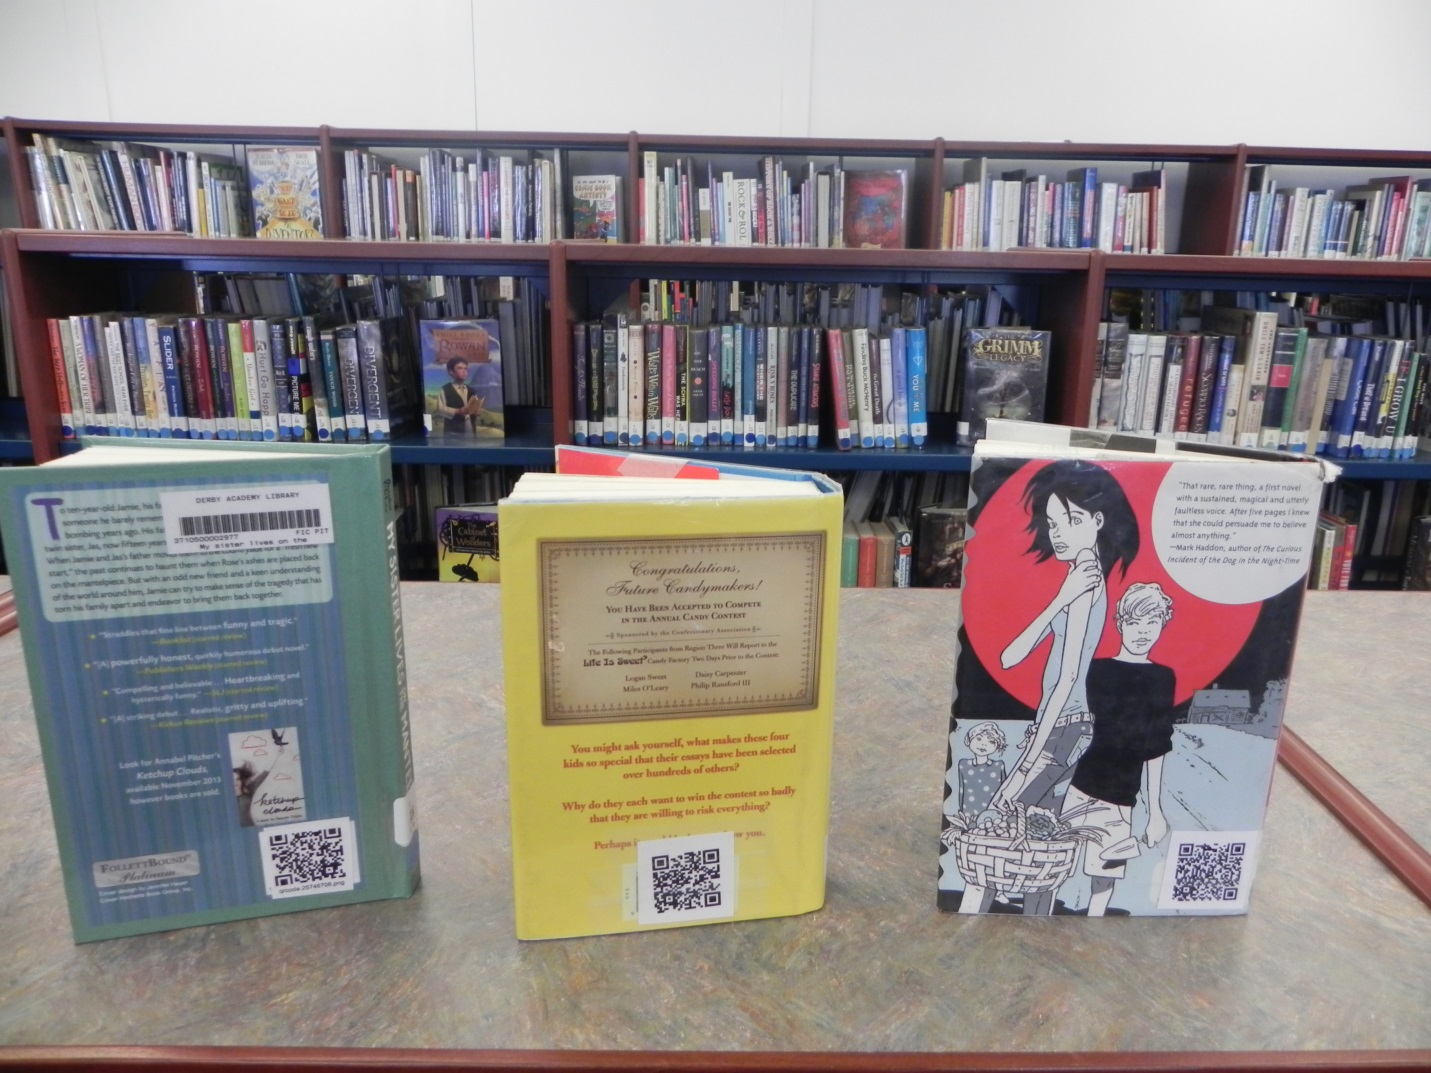 Using qr codes to promote your library novelist ebscohost mystery qr codes fandeluxe Gallery